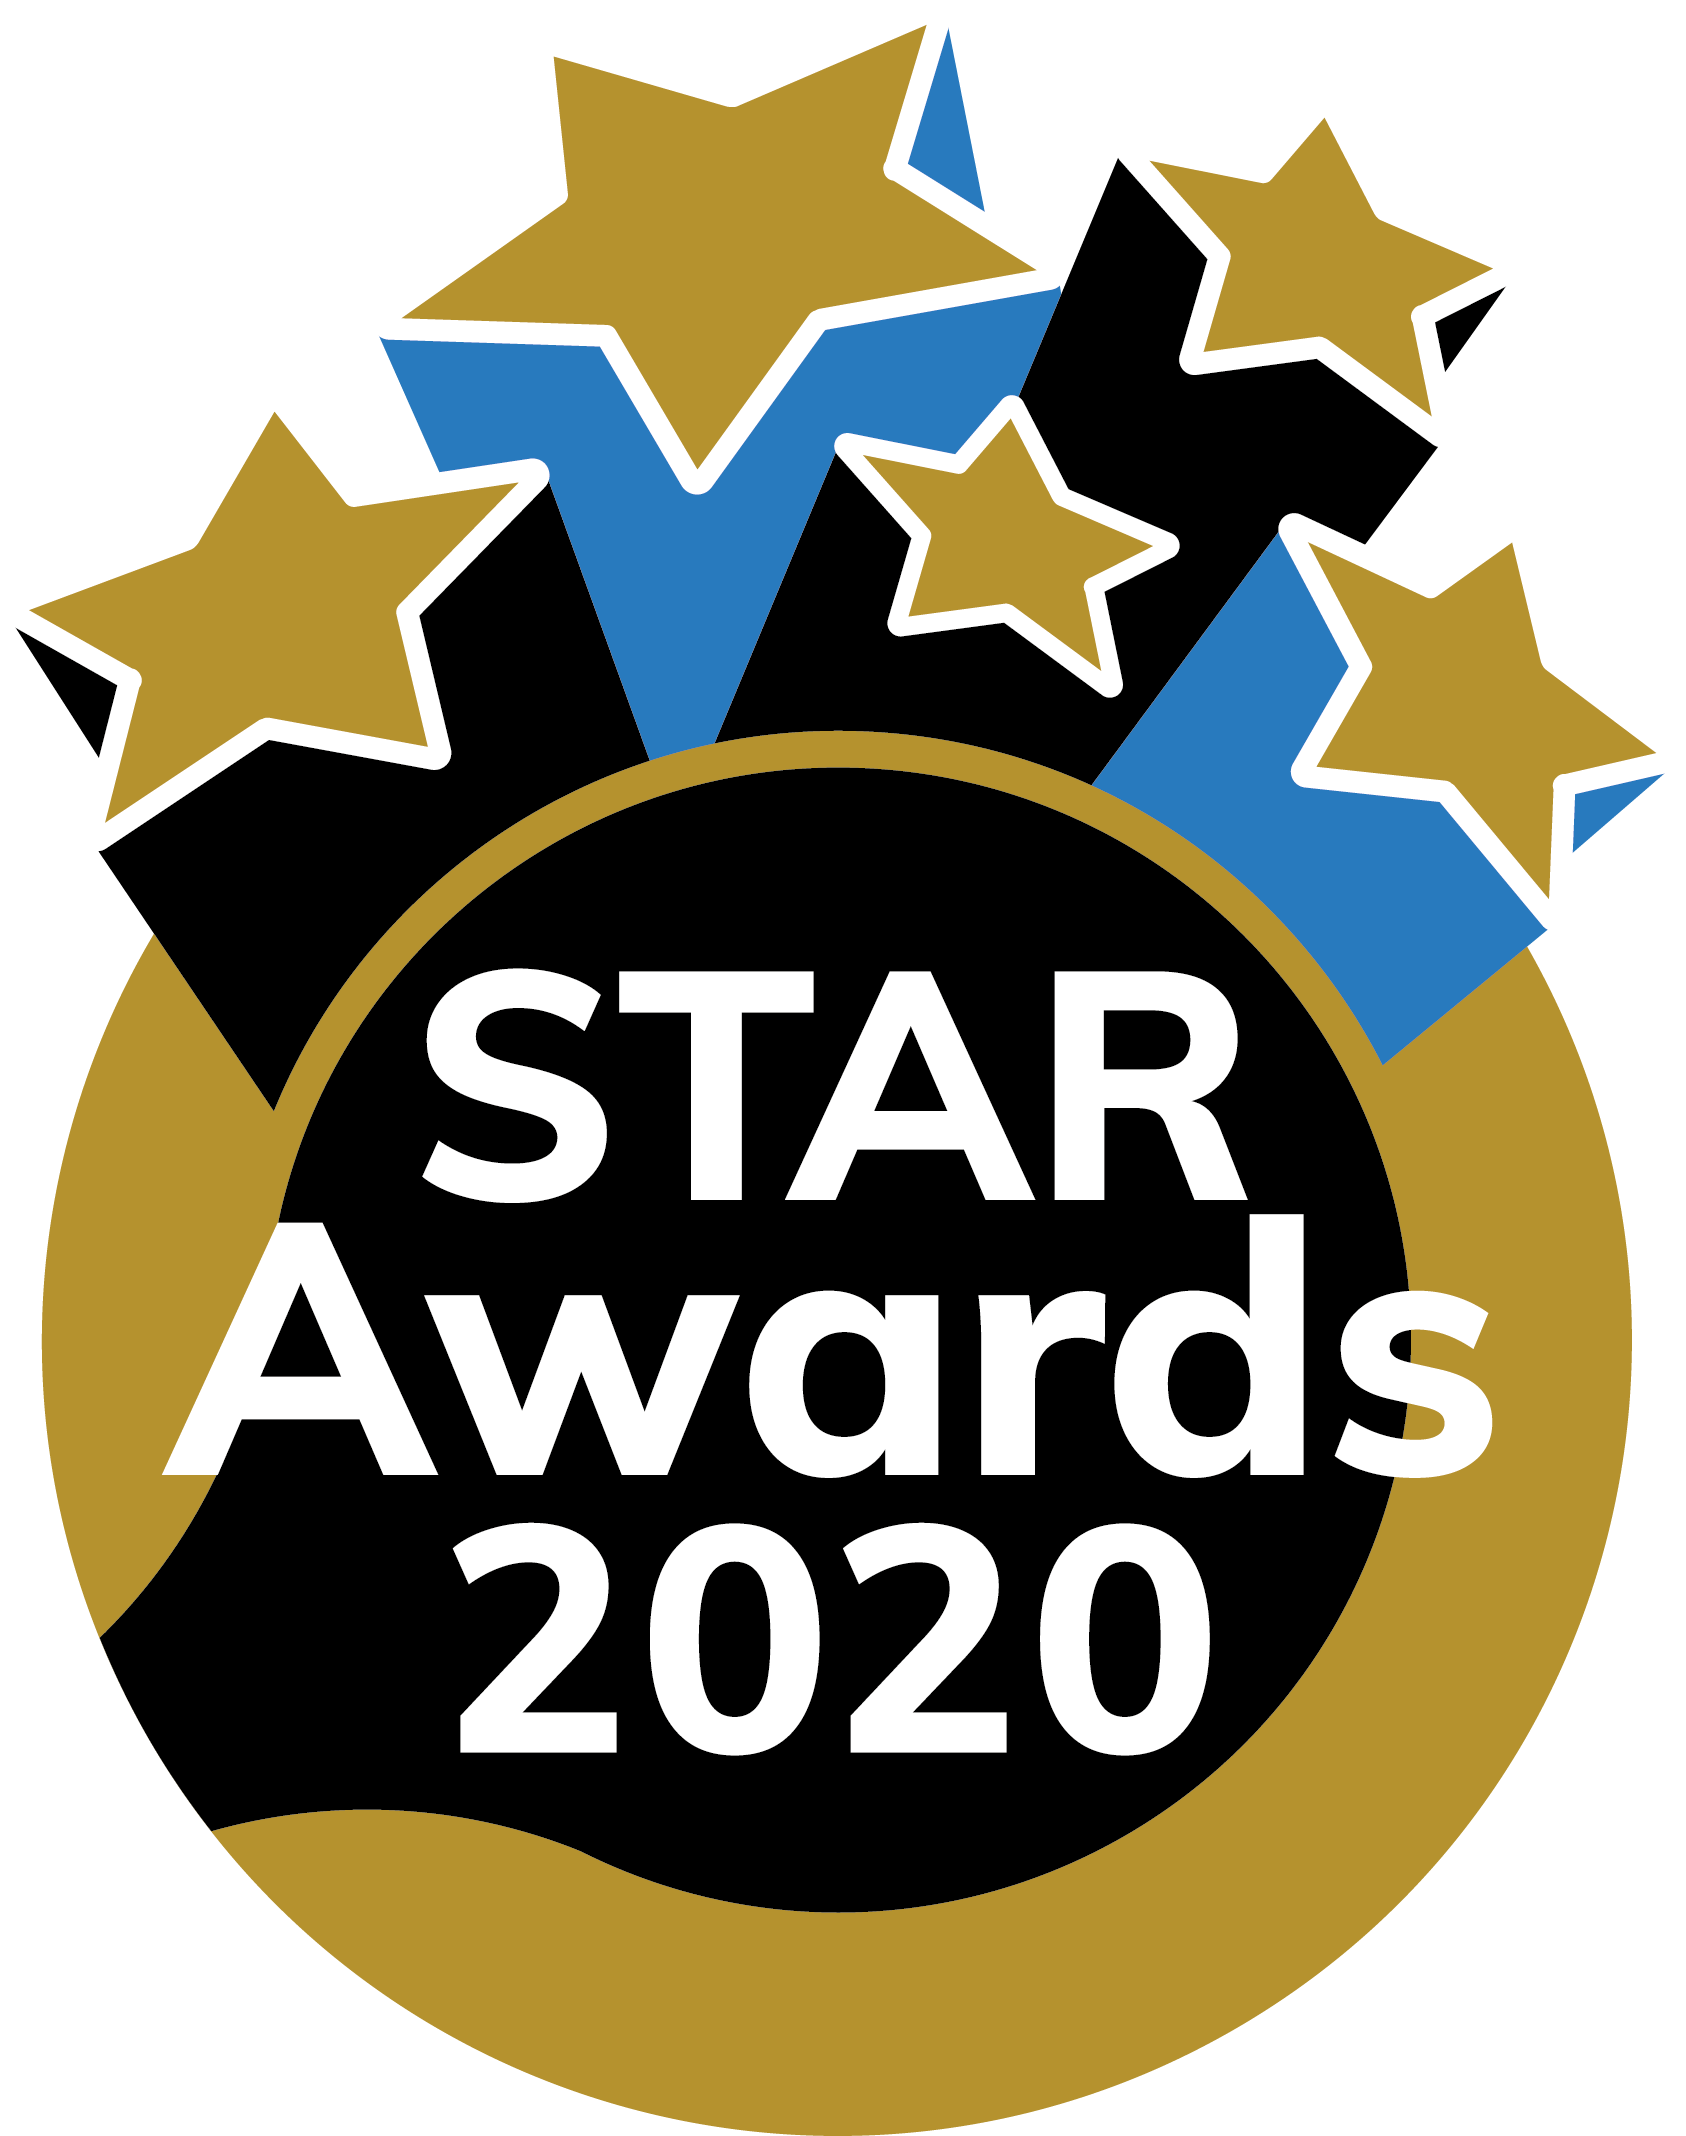 STAR Awards 2020